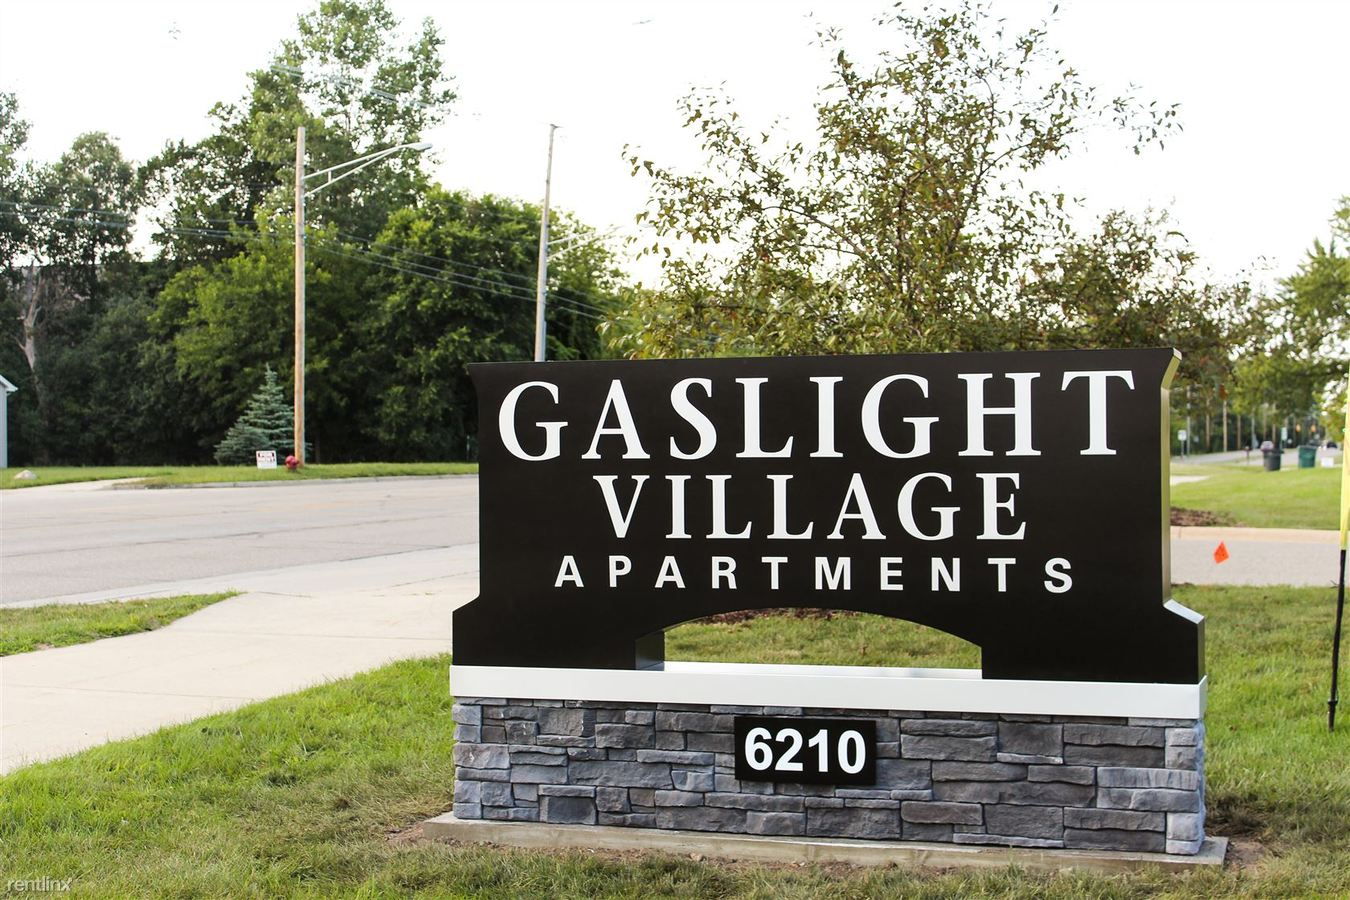 2 Bedrooms 2 Bathrooms Apartment for rent at Gaslight Village in East Lansing, MI